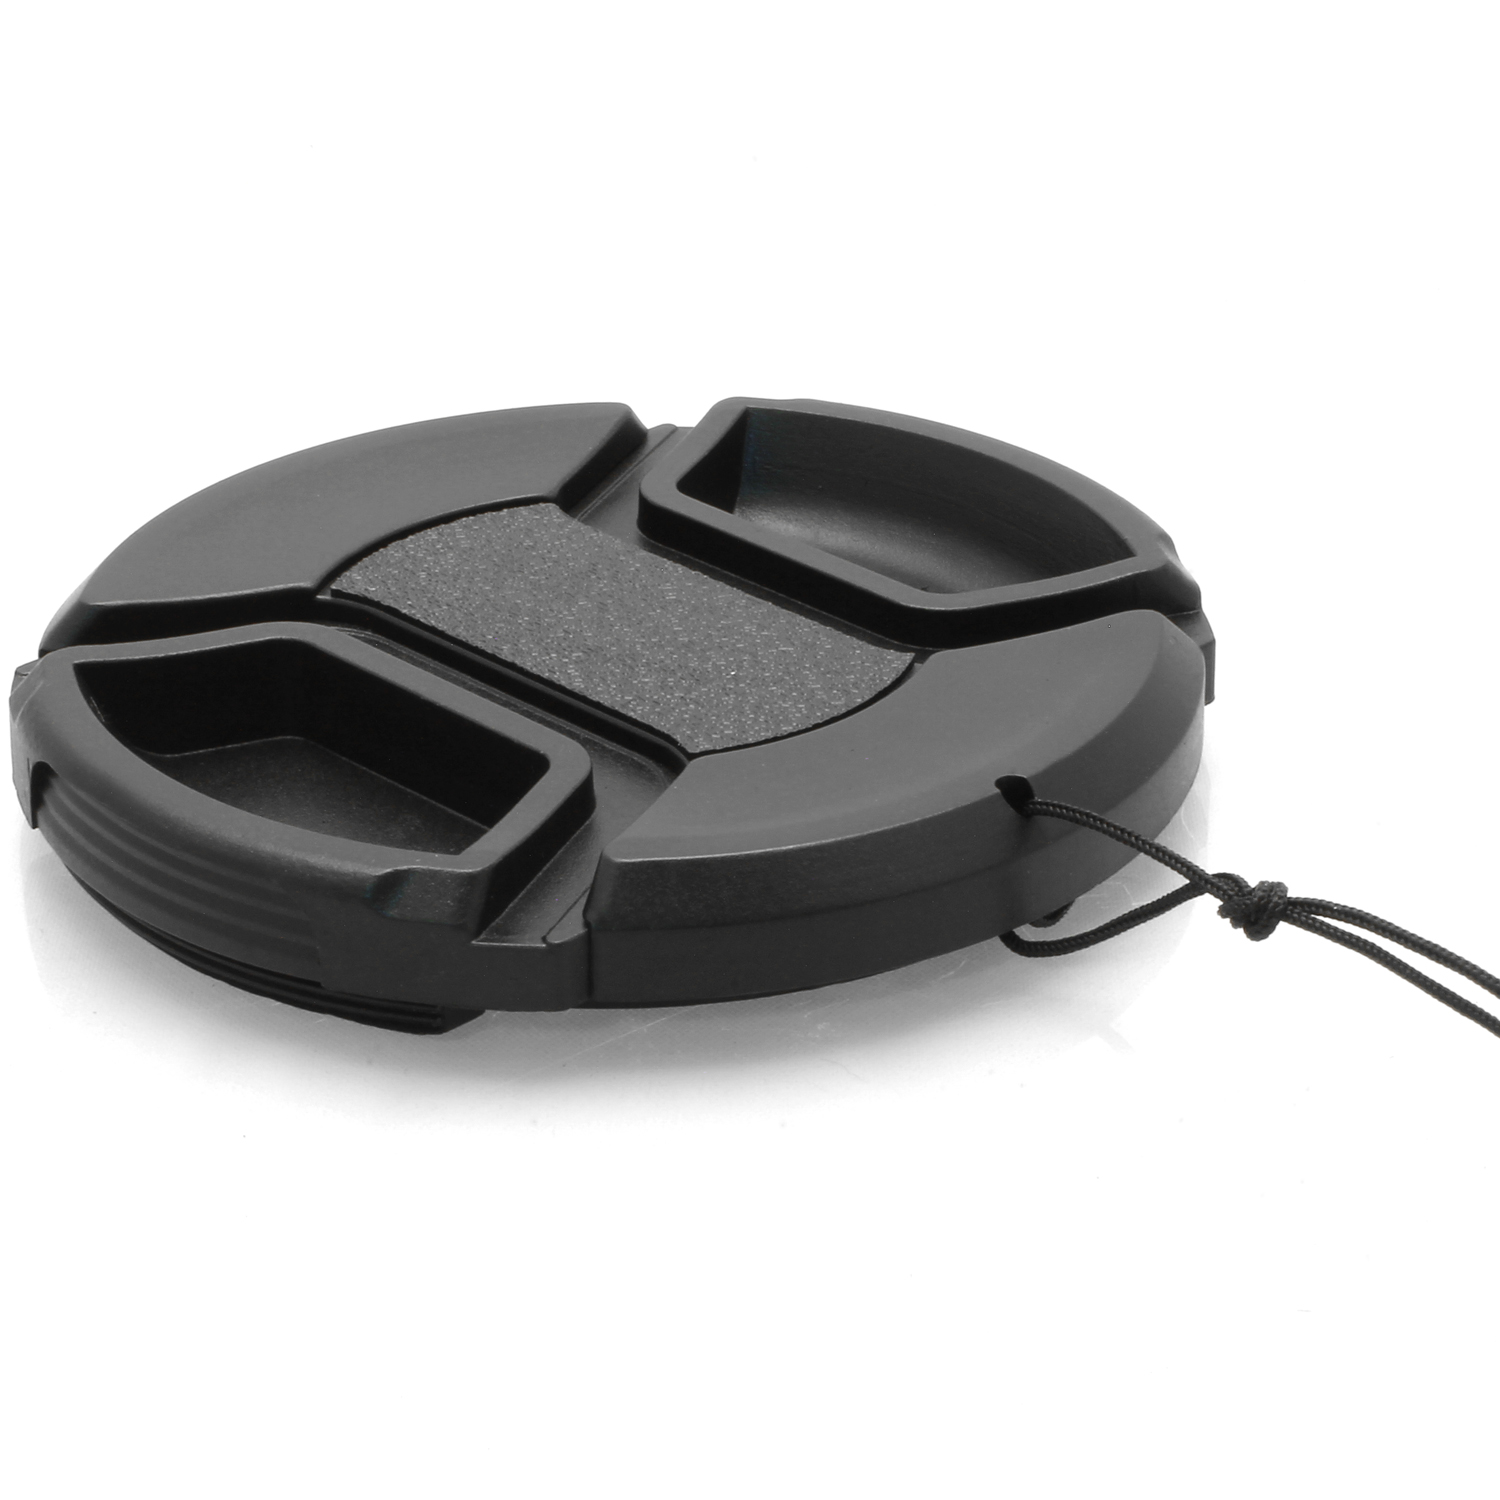 iGadgitz Xtra 55mm Centre Pinch Snap-On Lens Hood Cap Cover with Cord for SLR & DSLR Cameras